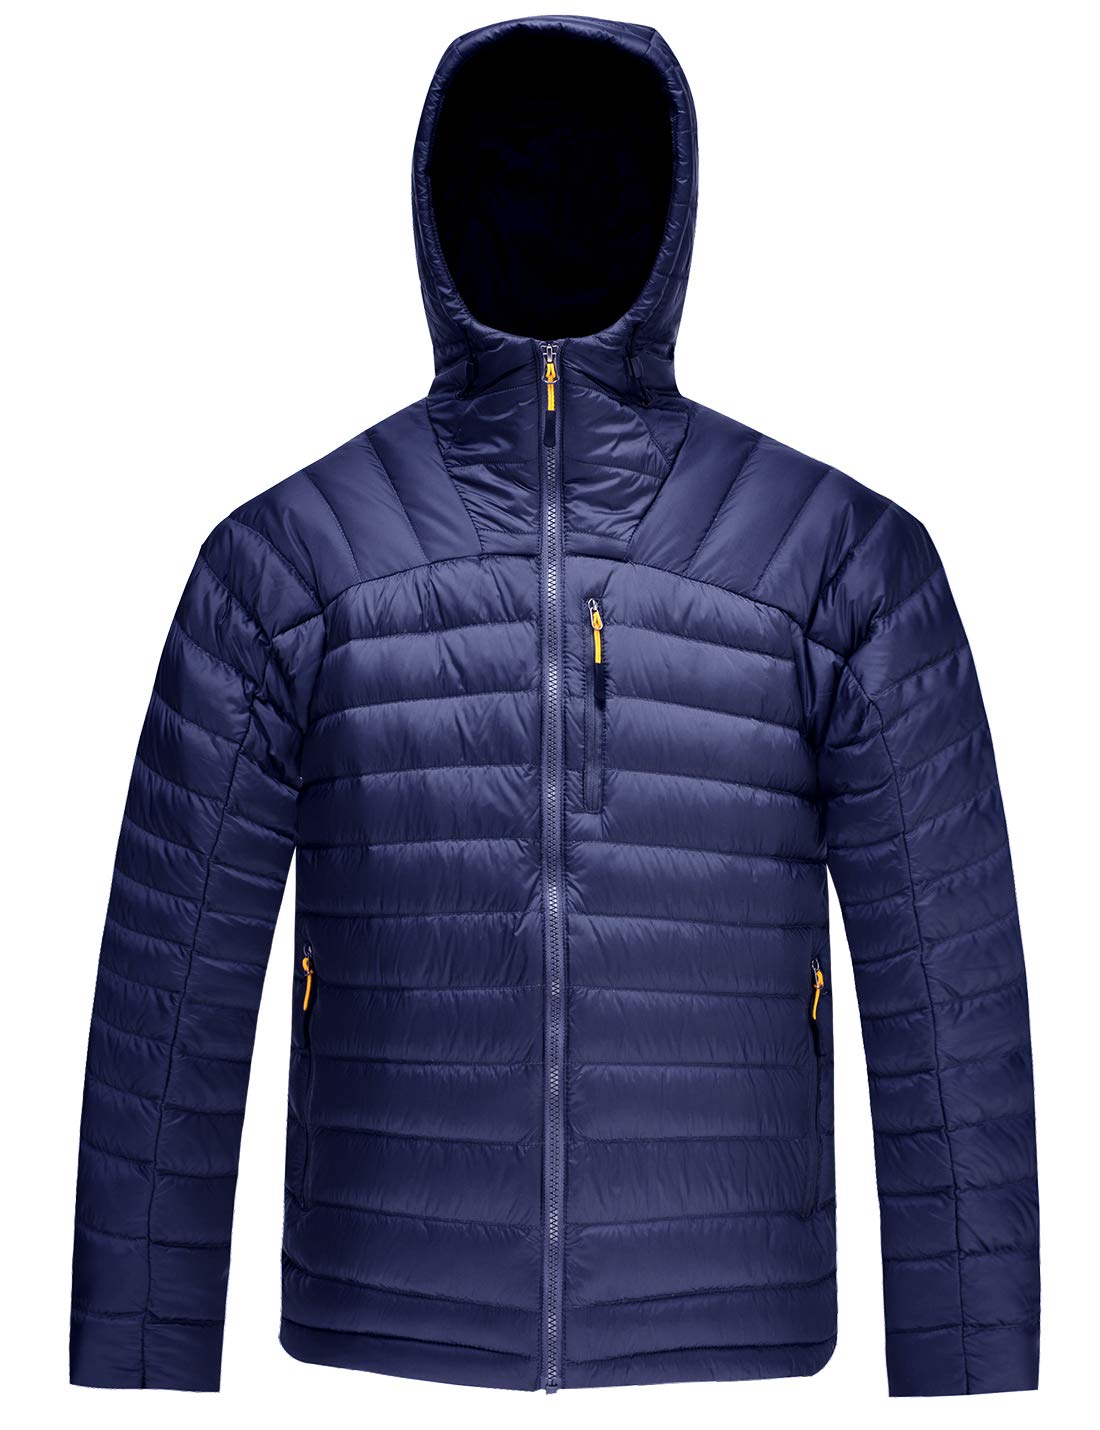 HARD LAND Men's Packable Down Jacket Hooded Lightweight Winter Puffer Coat Outerwear EY18042